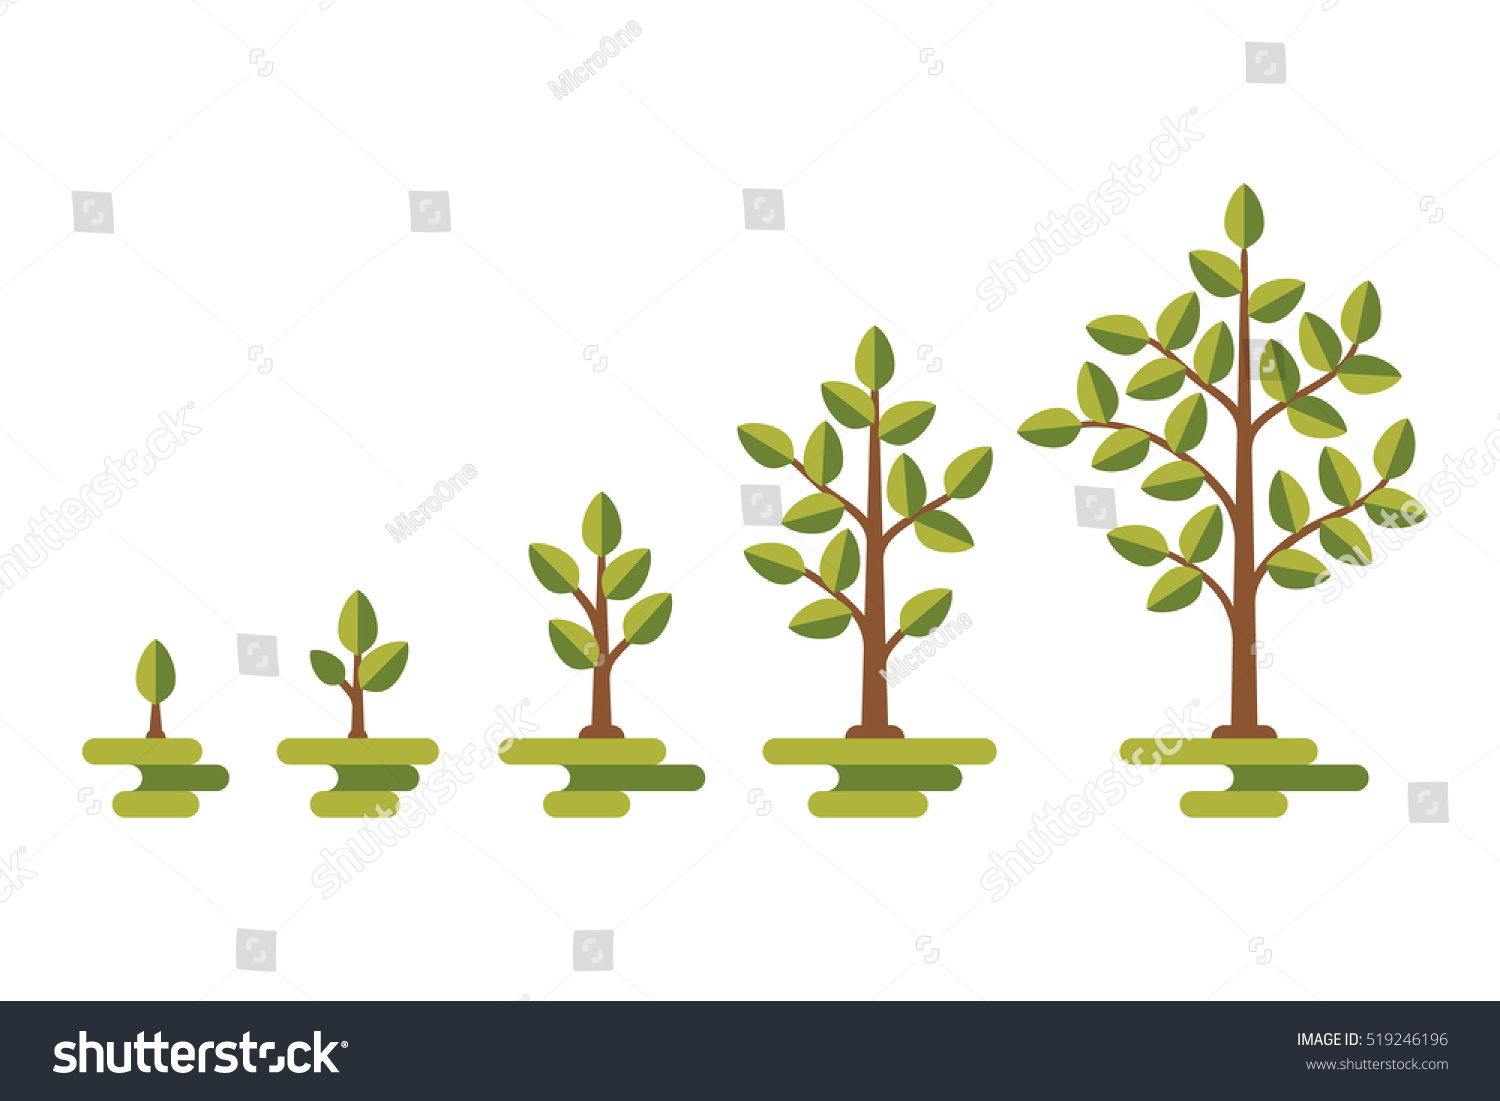 hight resolution of green tree with leaf growth diagram business cycle development illustration 519246196